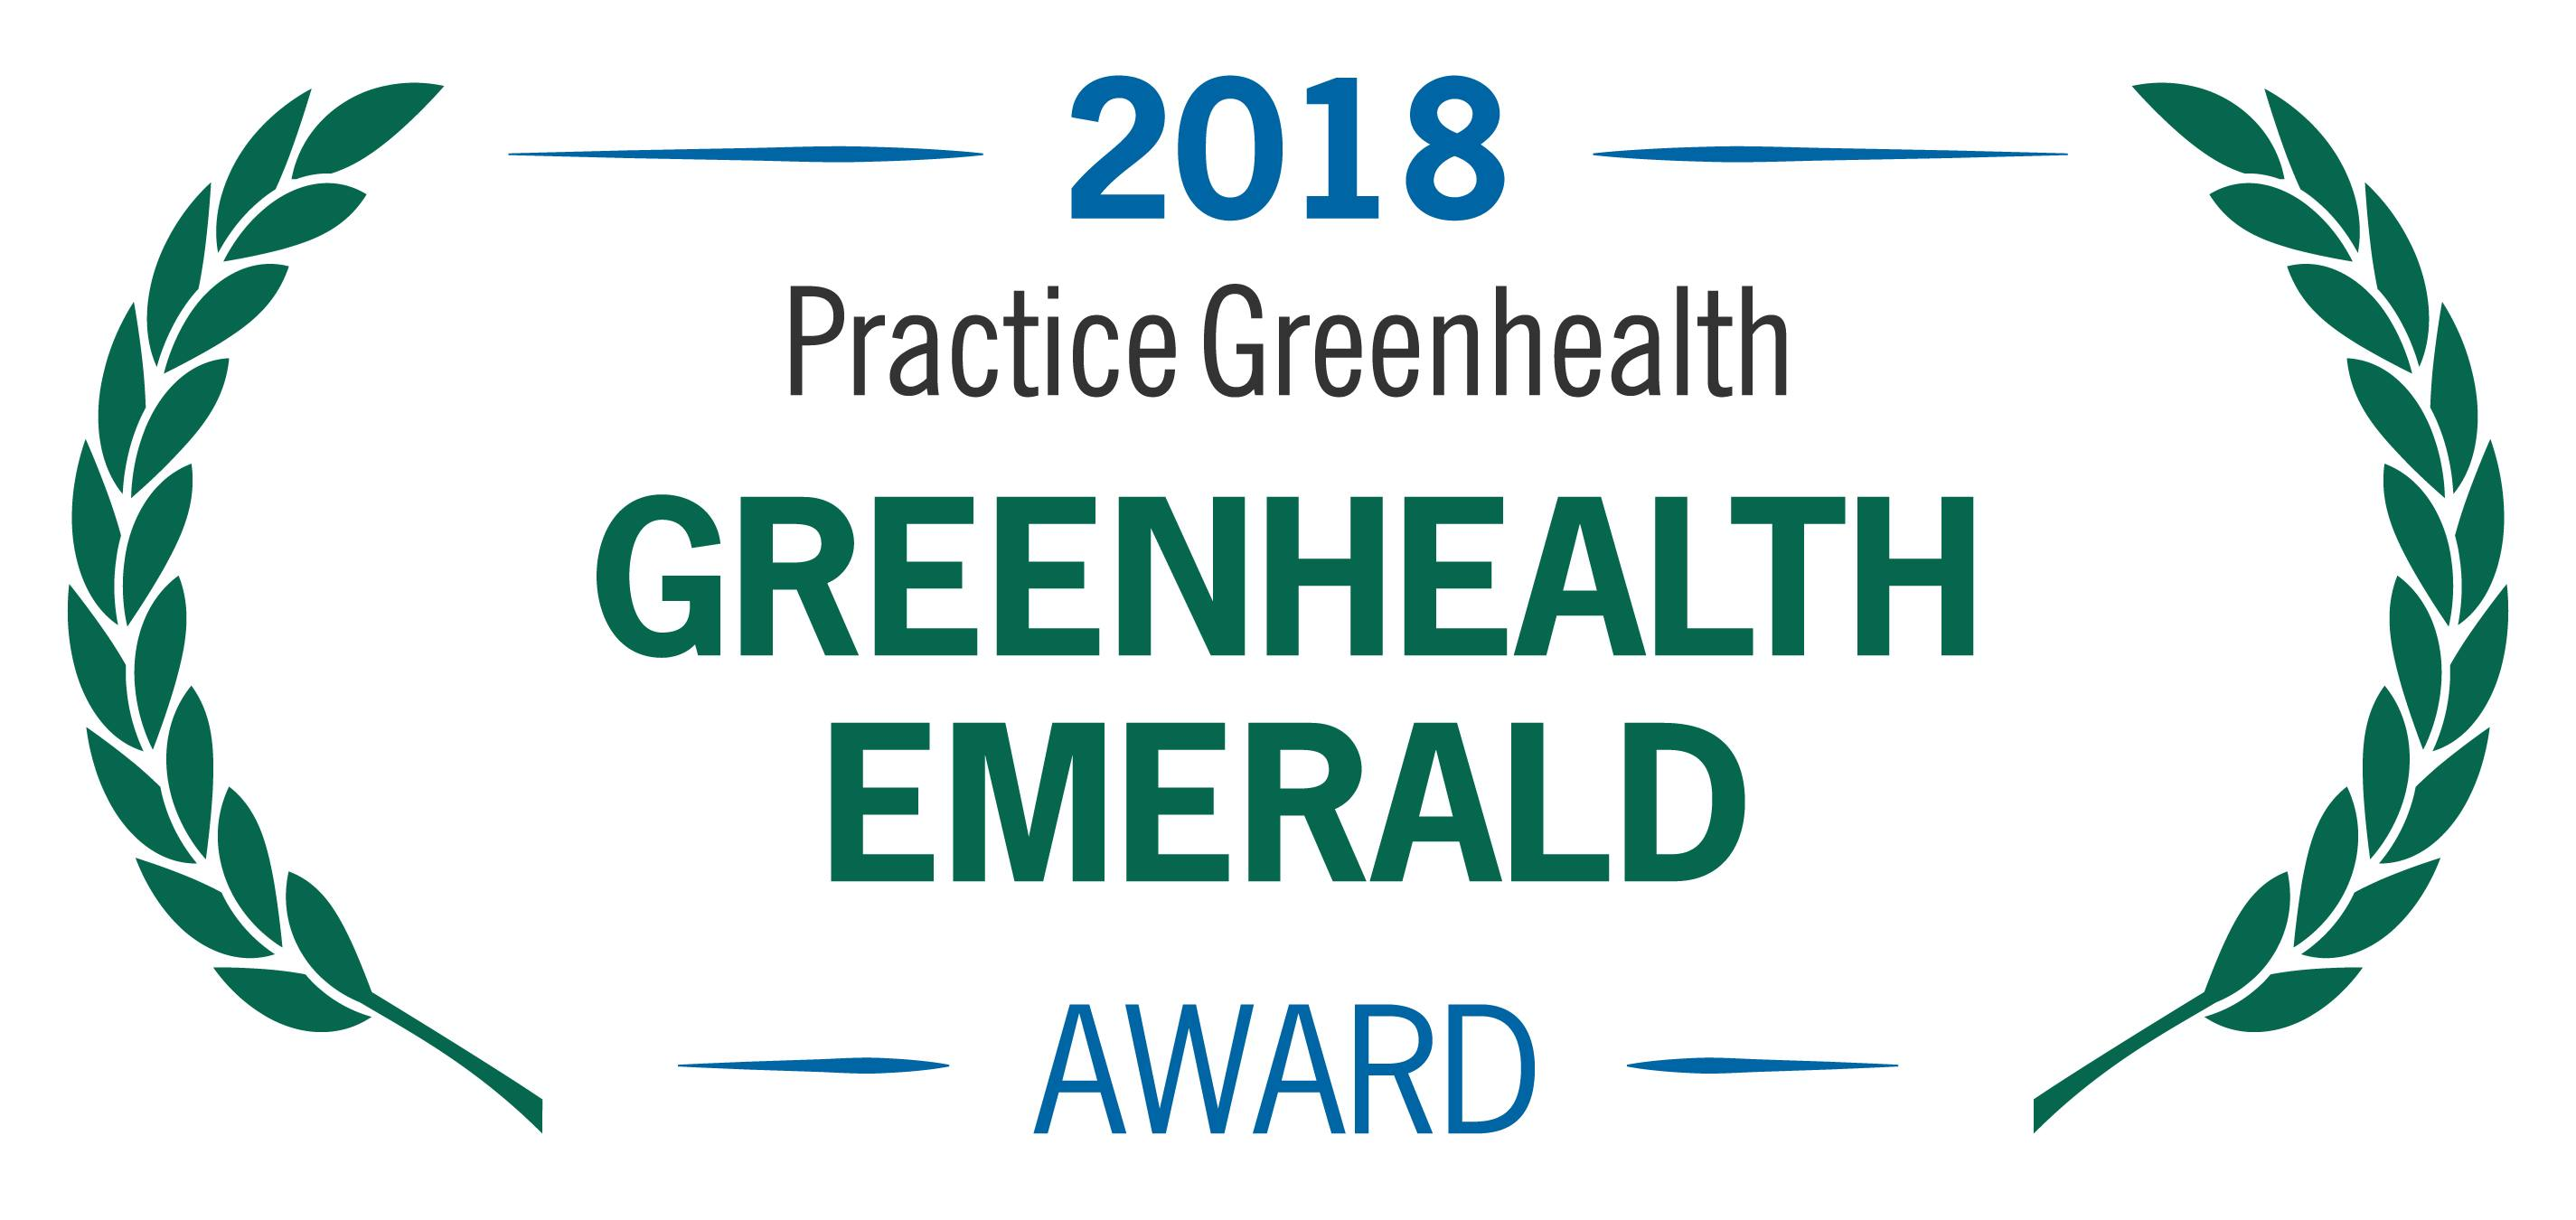 2018 Practice Greenhealth Emerald Award